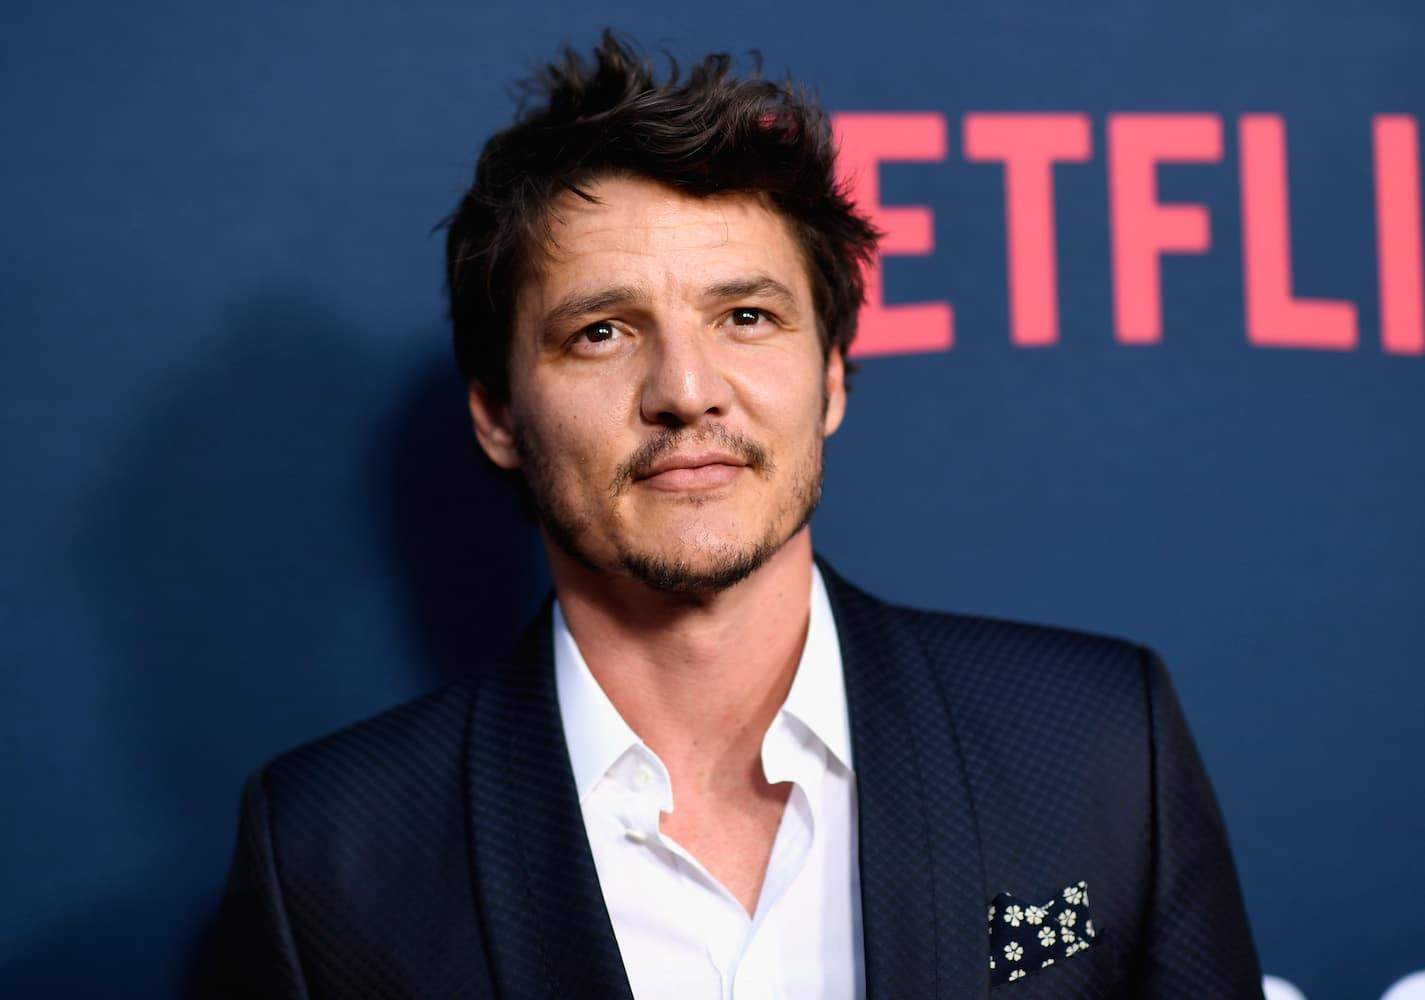 'Game of Thrones' & 'Narcos' Actor Pedro Pascal Cast in 'Wonder Woman' Sequel